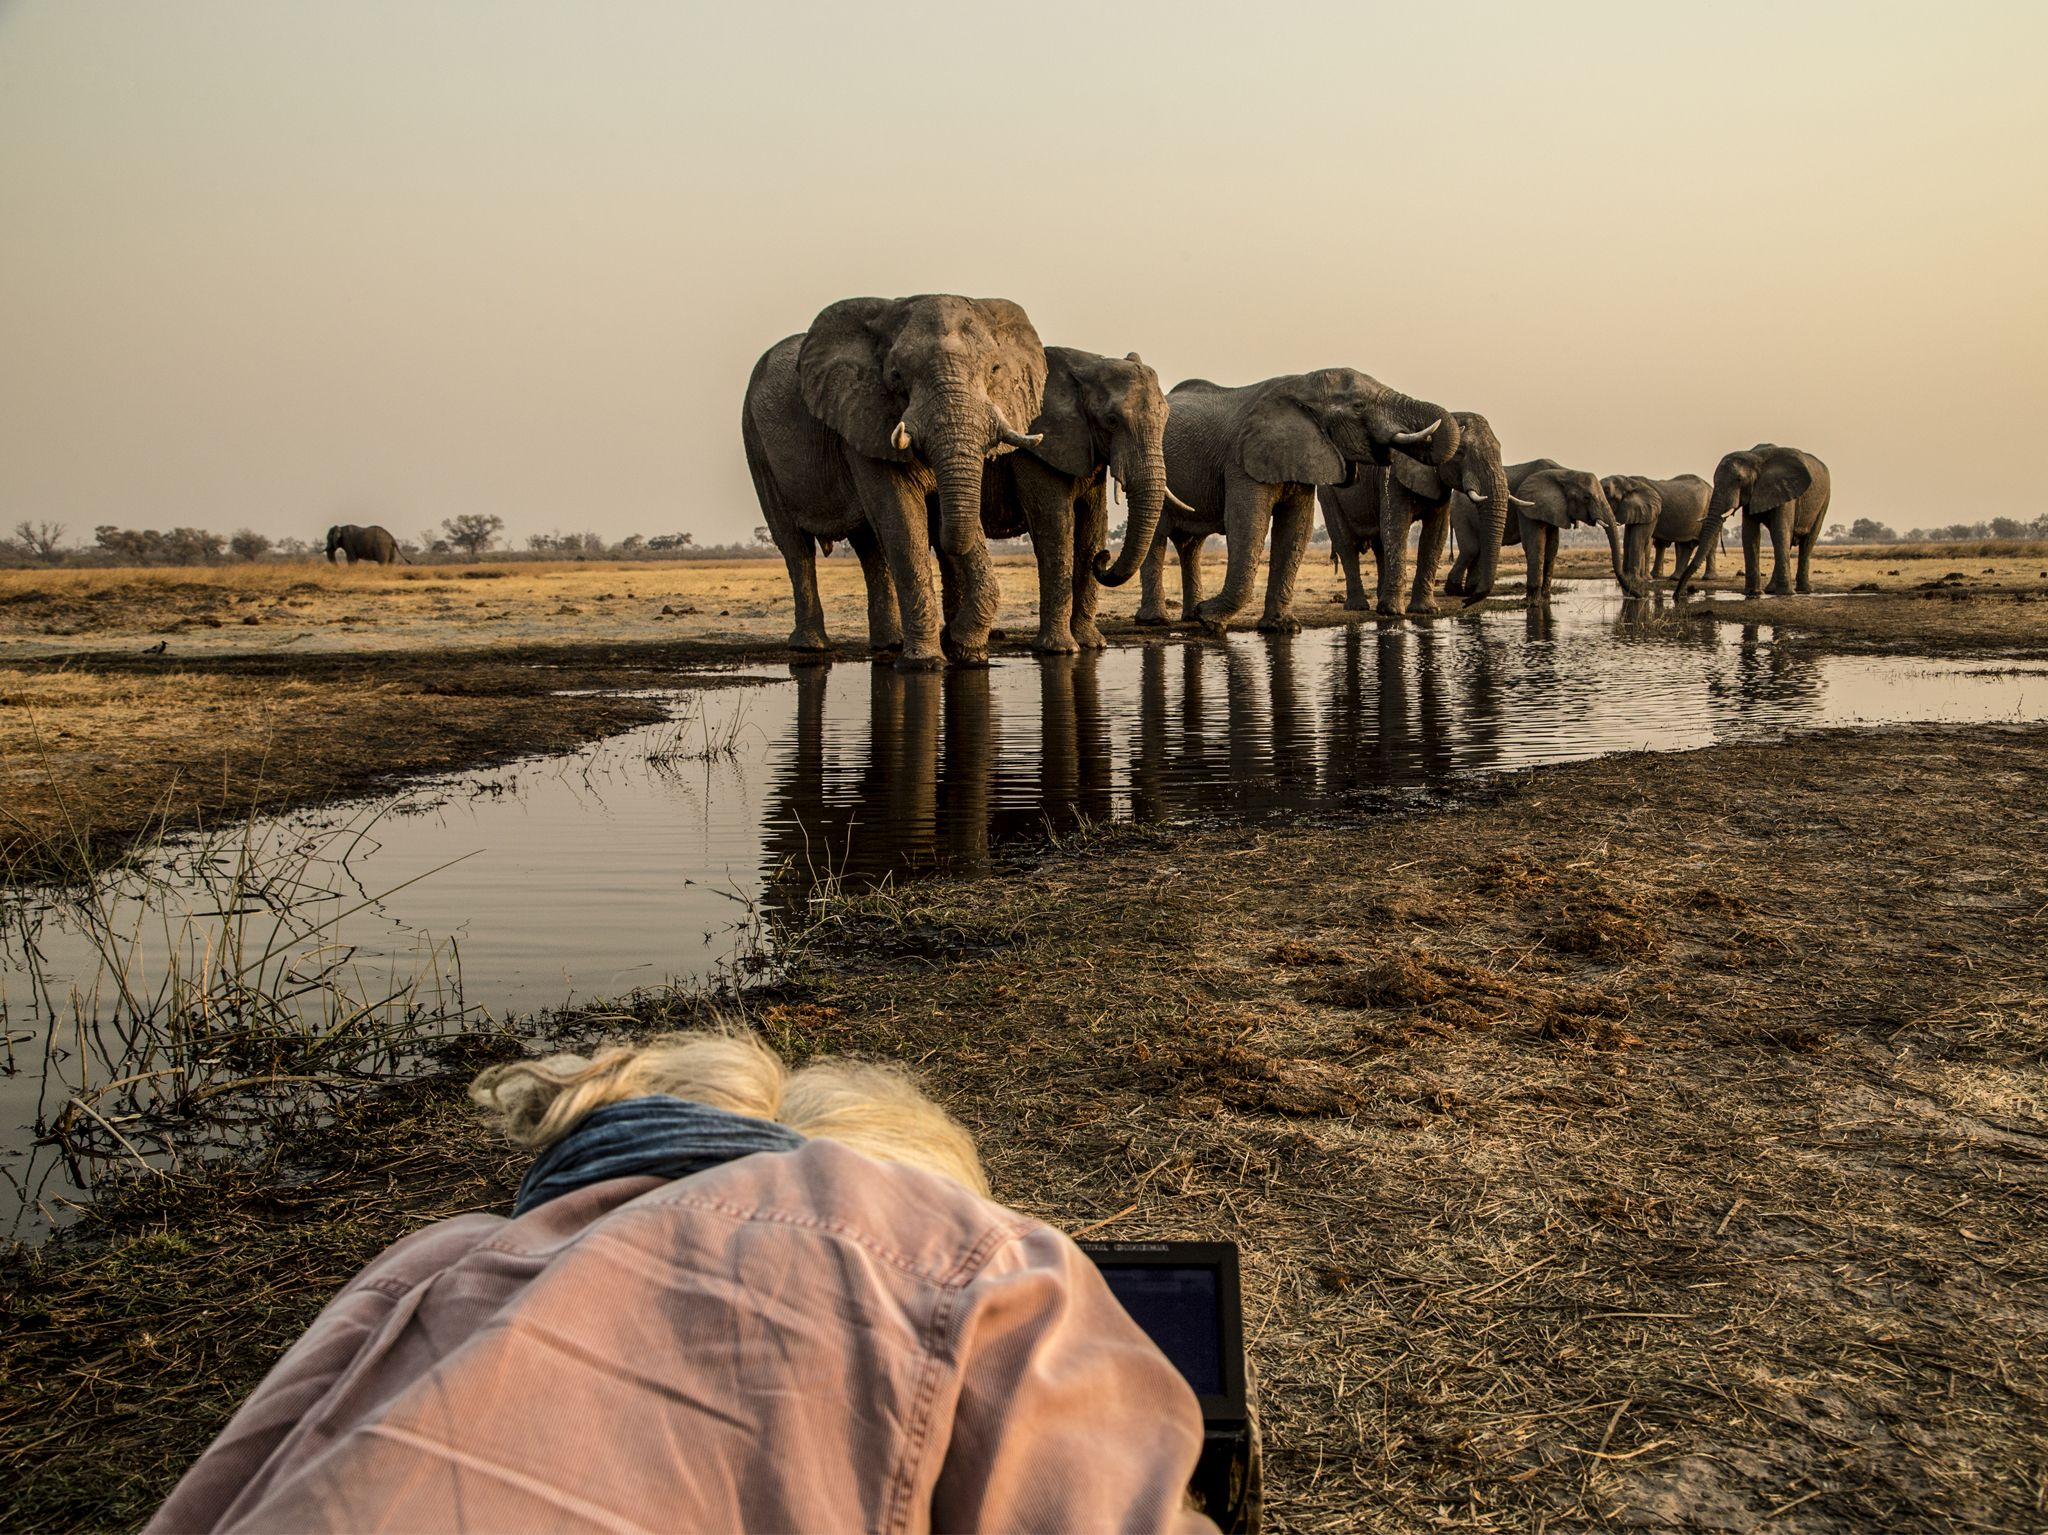 Dereck Joubert lying on the ground filming a herd of elephants drinking from a small spillway.... [Photo of the day - April 2020]